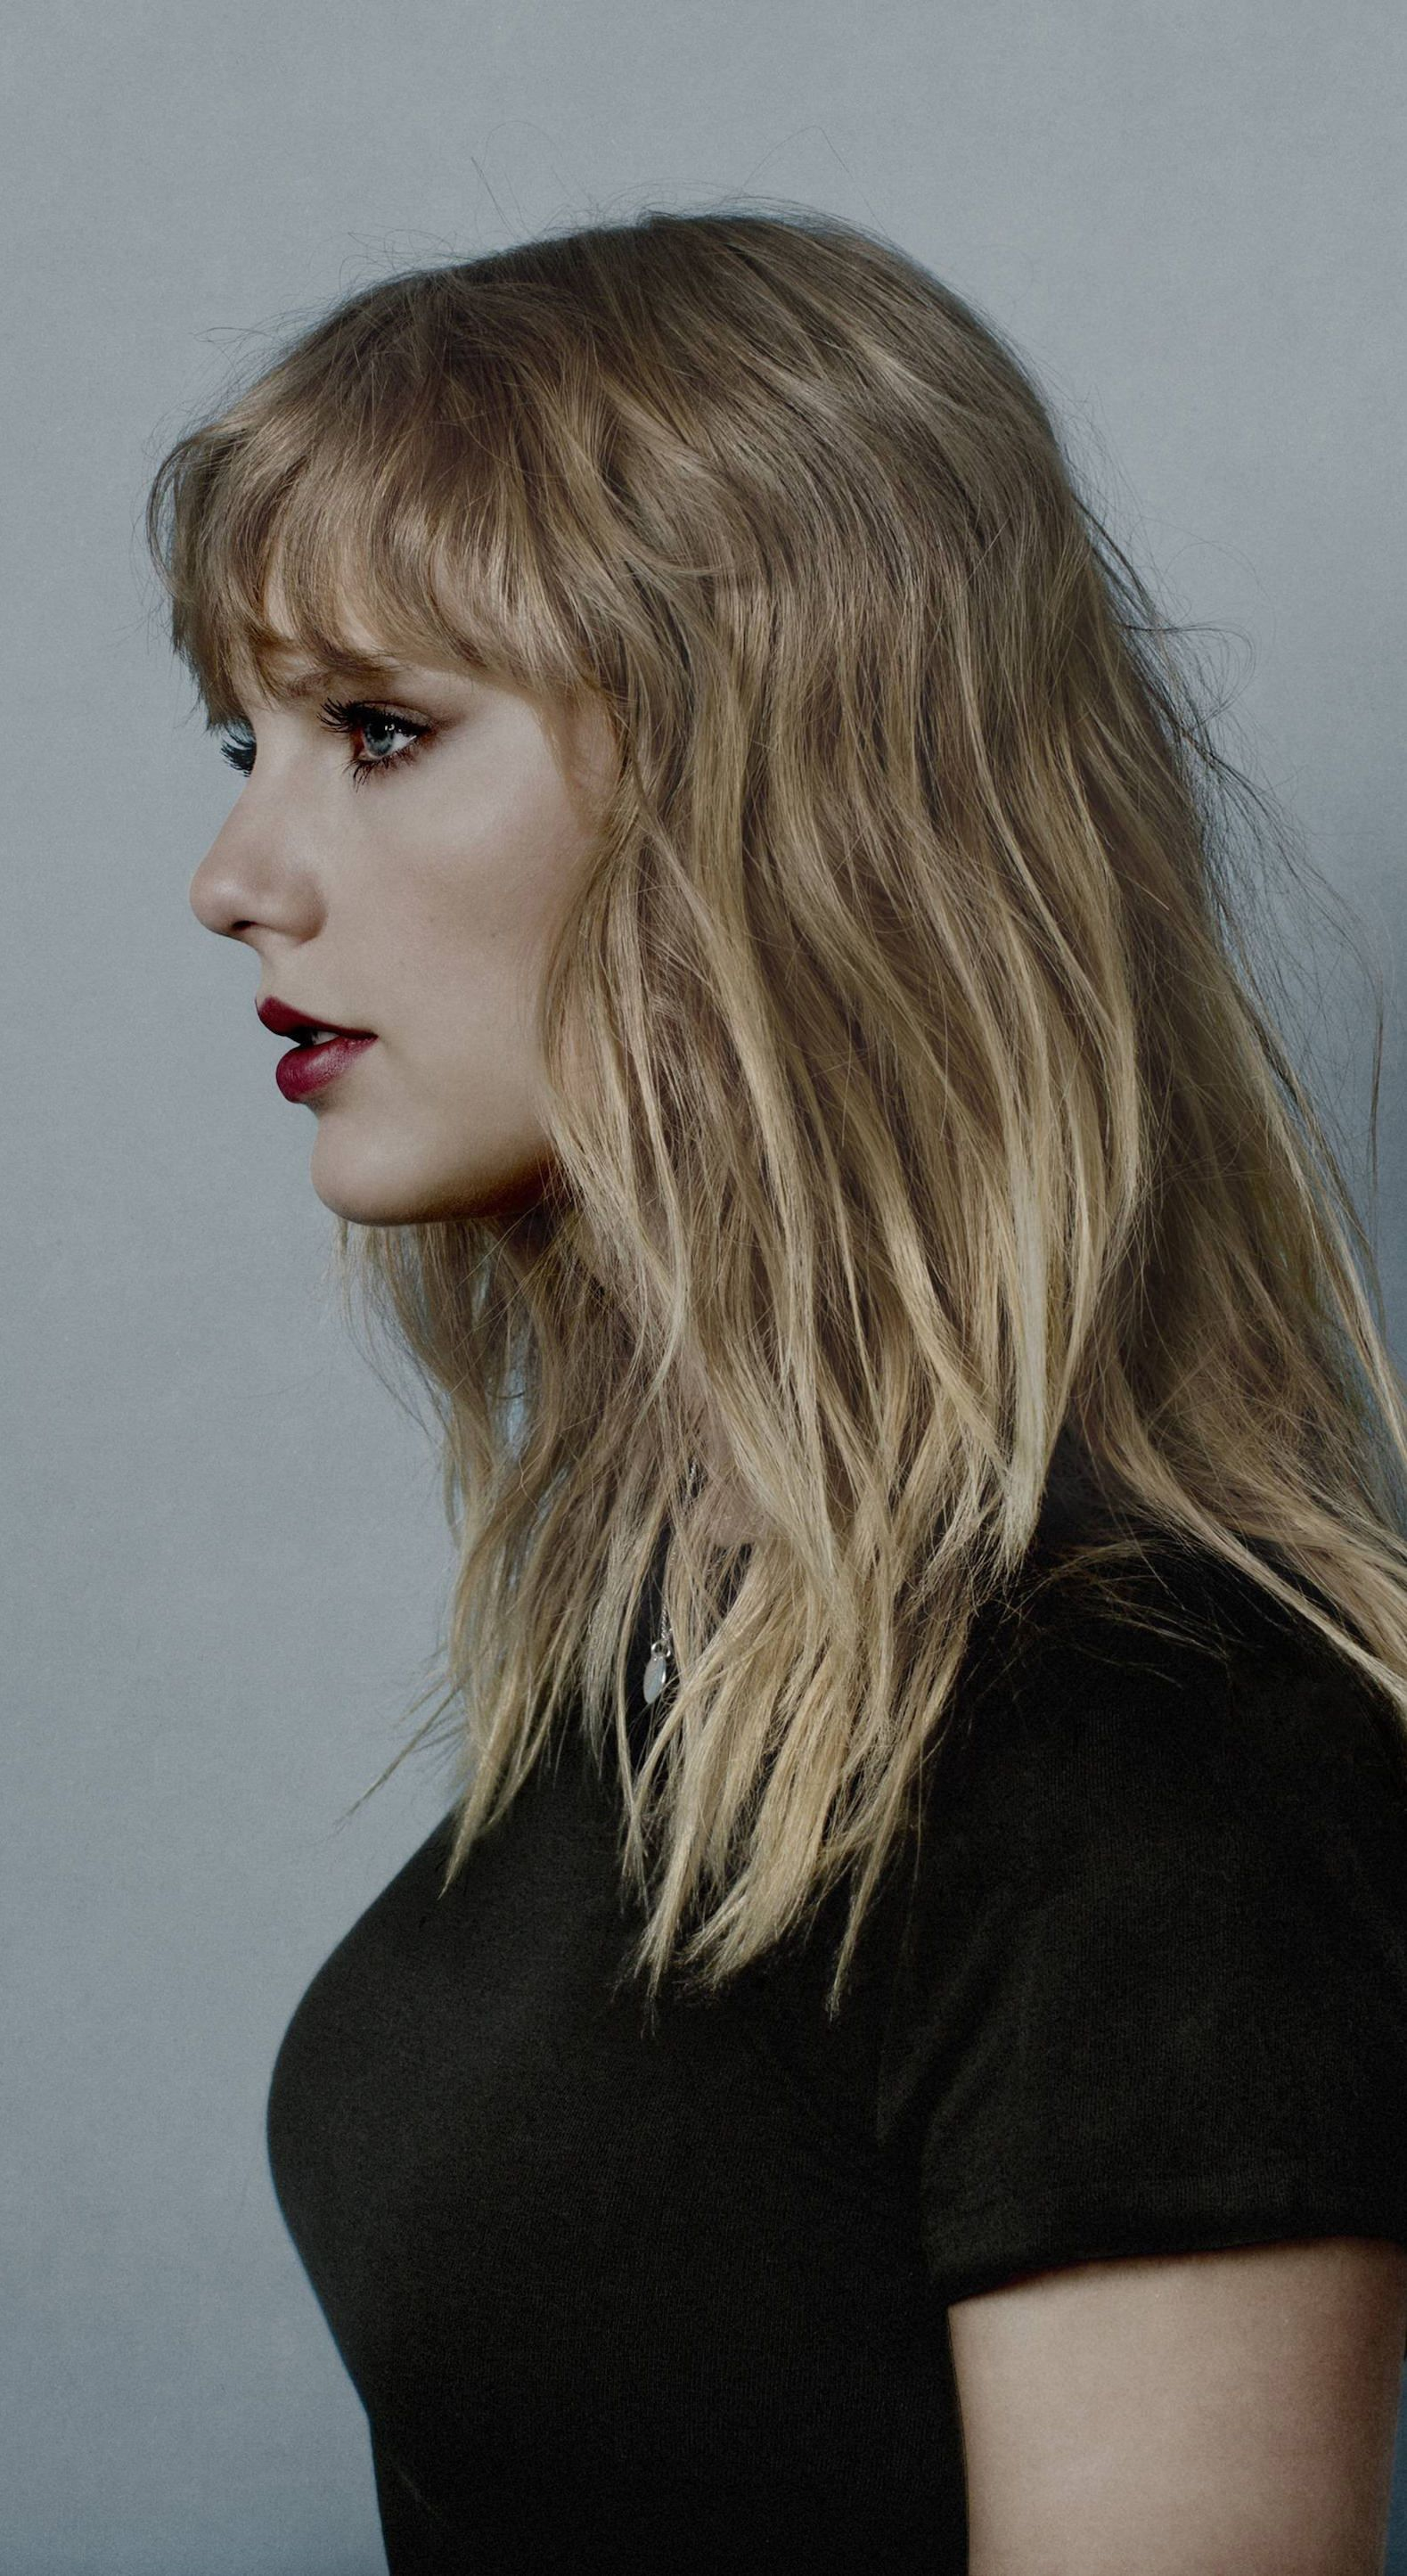 Taylor Swift iPhone Wallpapers   Top Taylor Swift iPhone 1579x2890